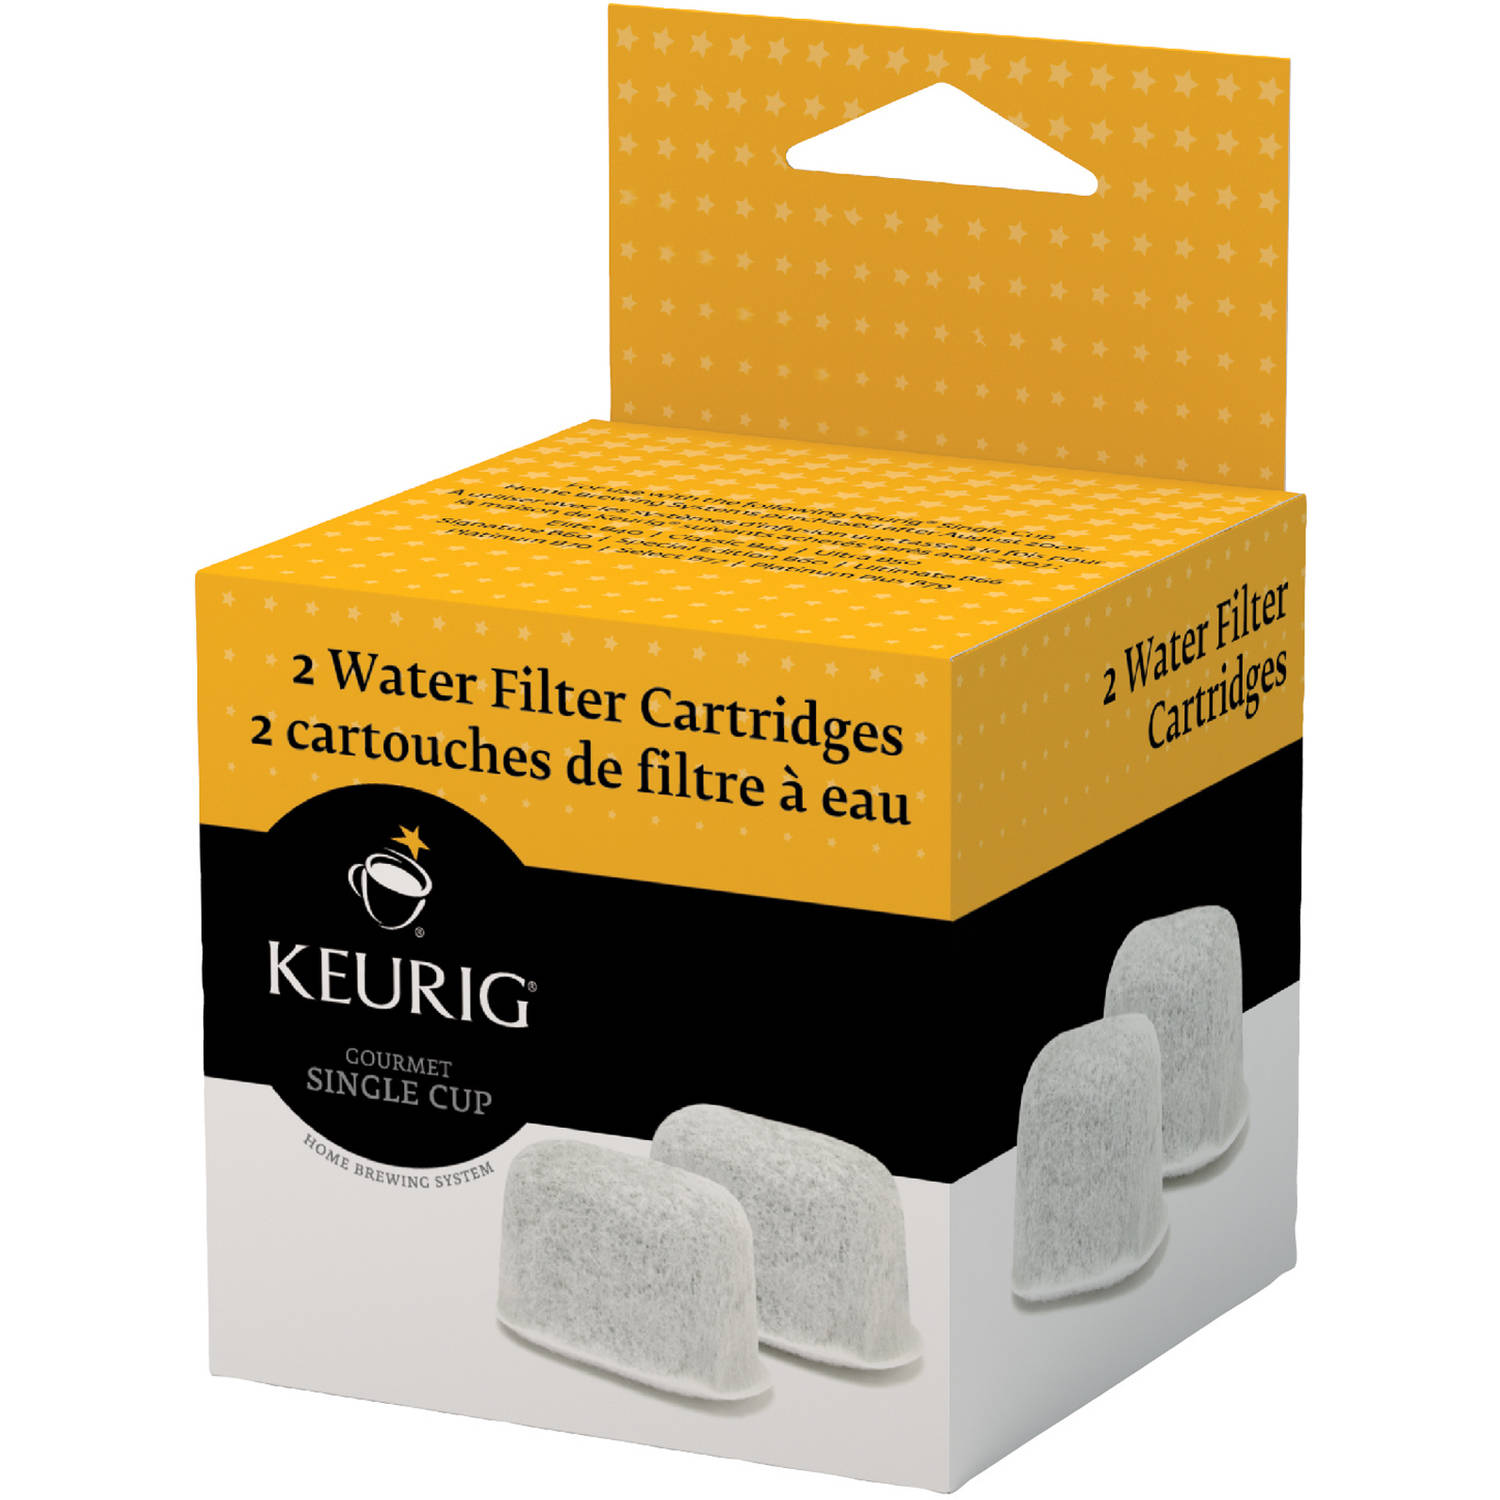 Keurig Water Filter Refill Cartridges, 2 ct